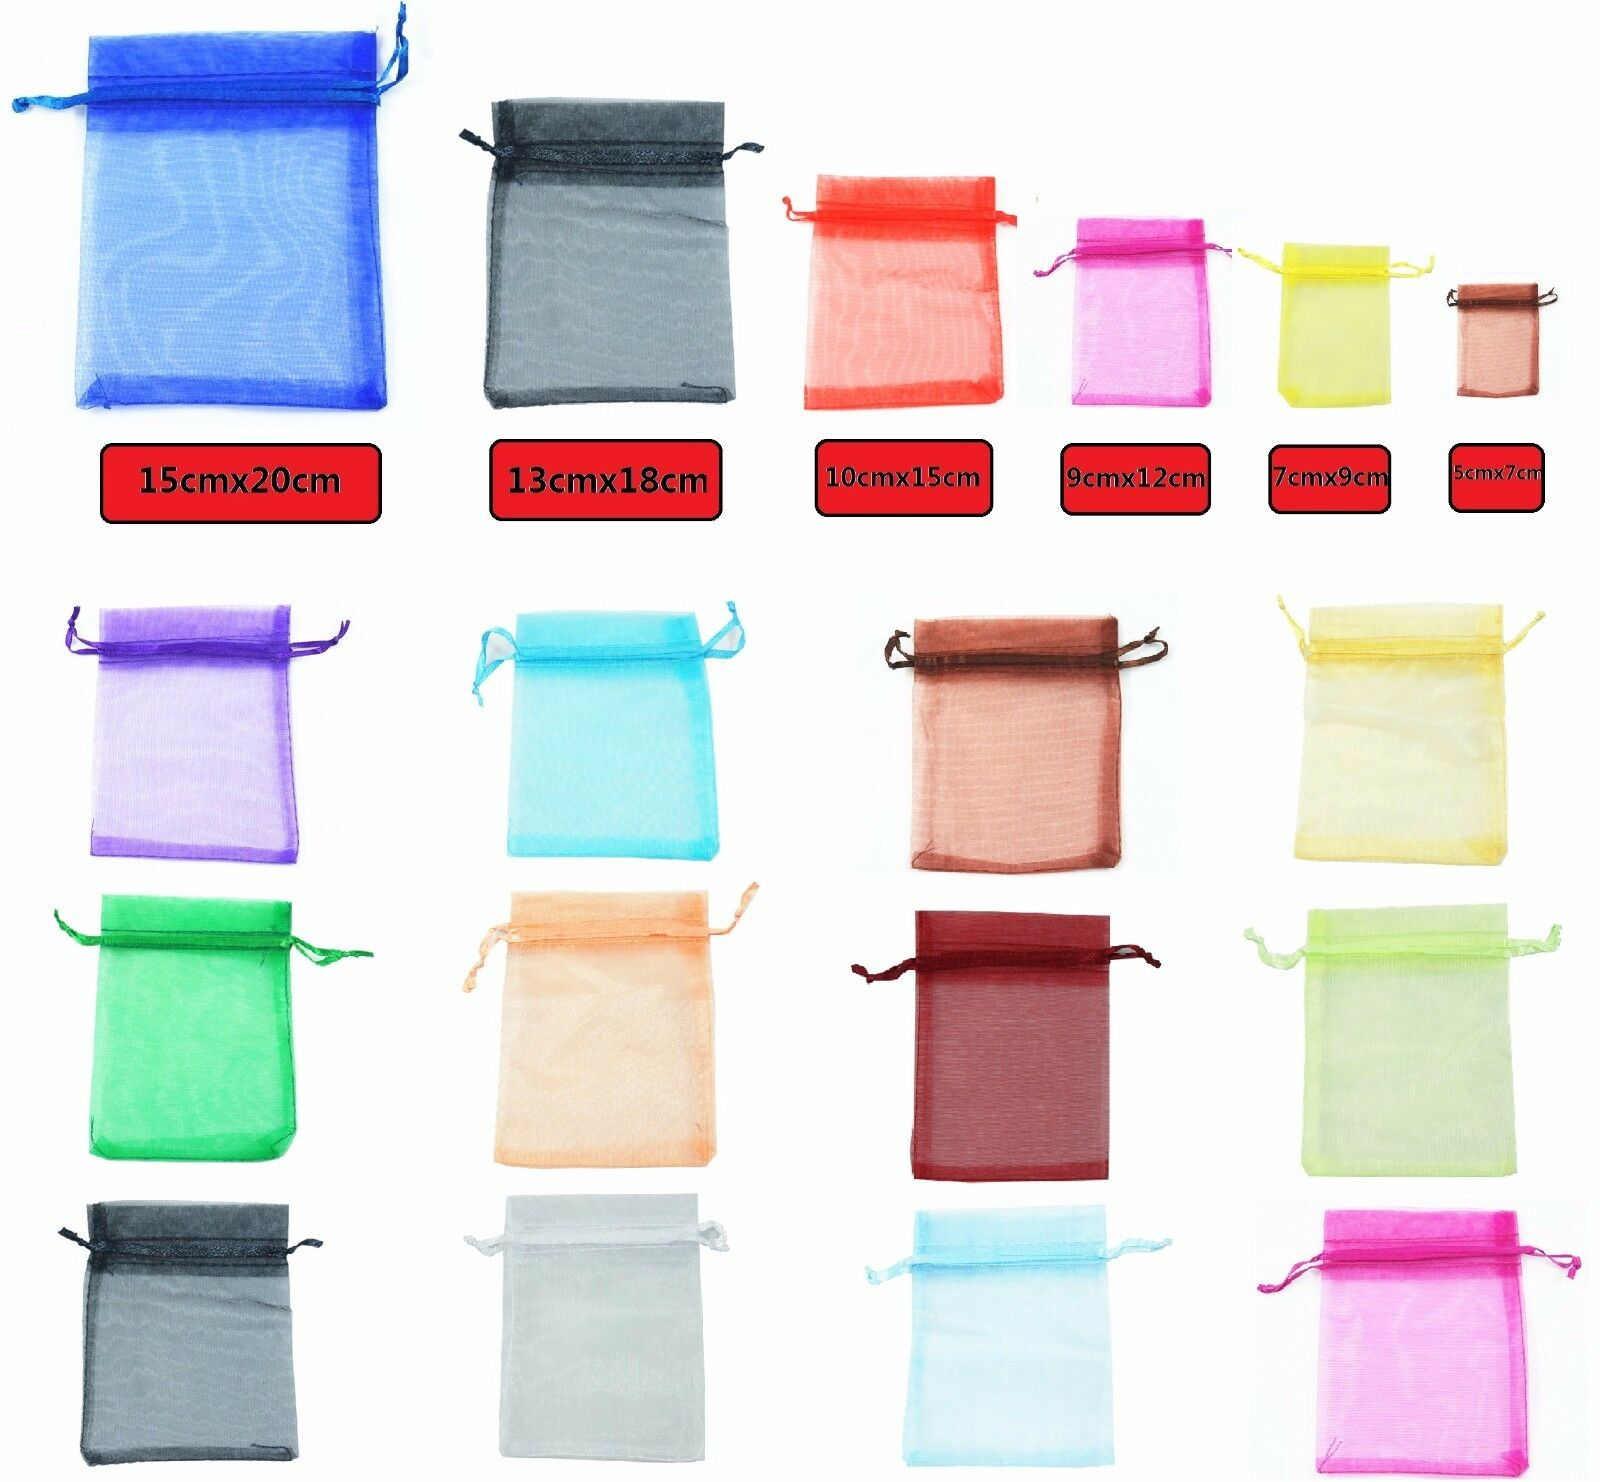 Jewellery - 50 LUXURY Organza Gift Bags Jewellery Pouches XMAS Wedding Party Candy Favour